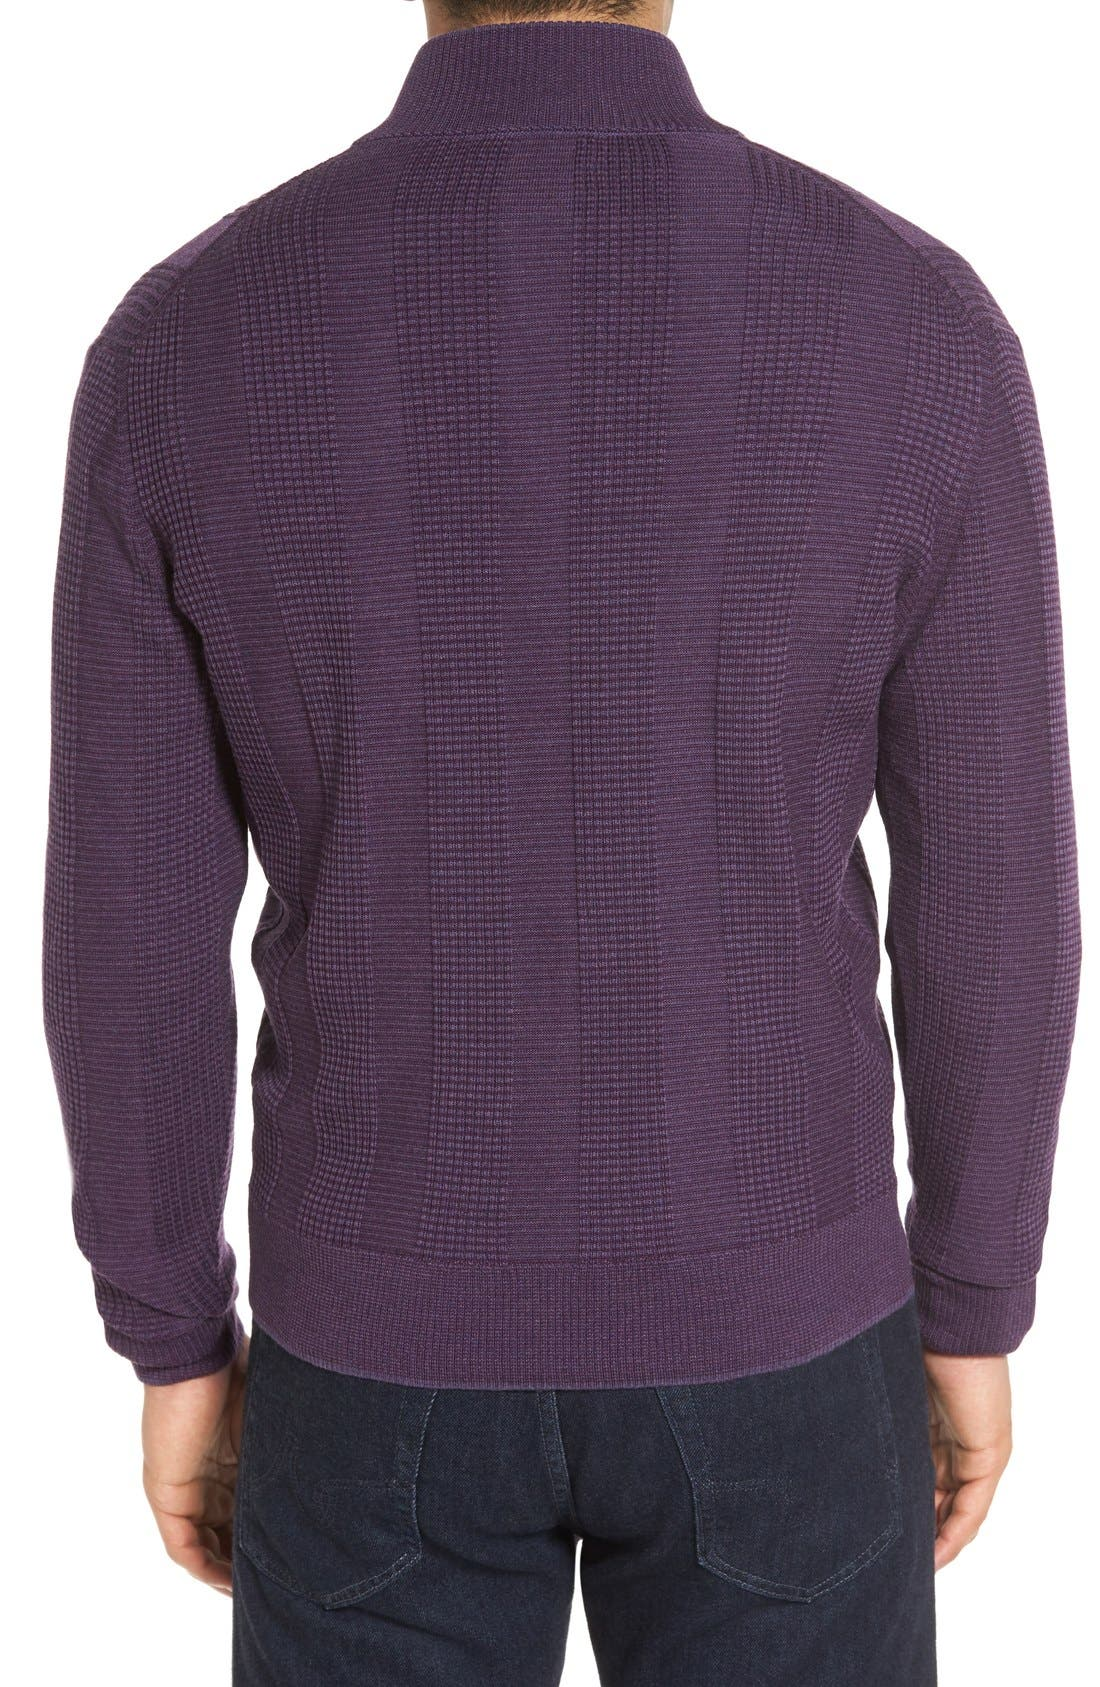 'Legacy Collection' Mock Neck Wool Sweater,                             Alternate thumbnail 2, color,                             Concord